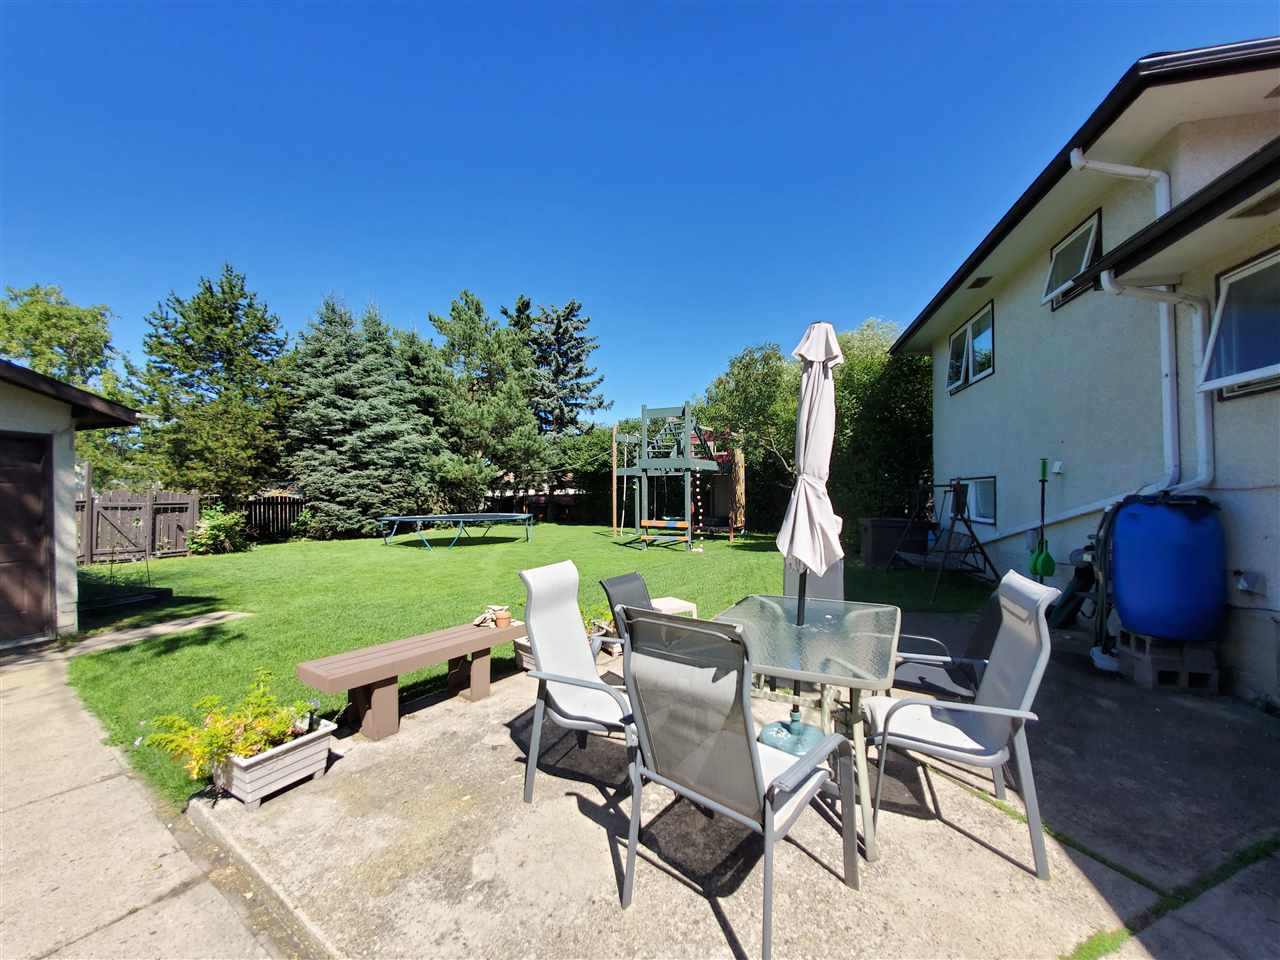 Photo 36: Photos: 125 Spruce Crescent: Wetaskiwin House for sale : MLS®# E4207728